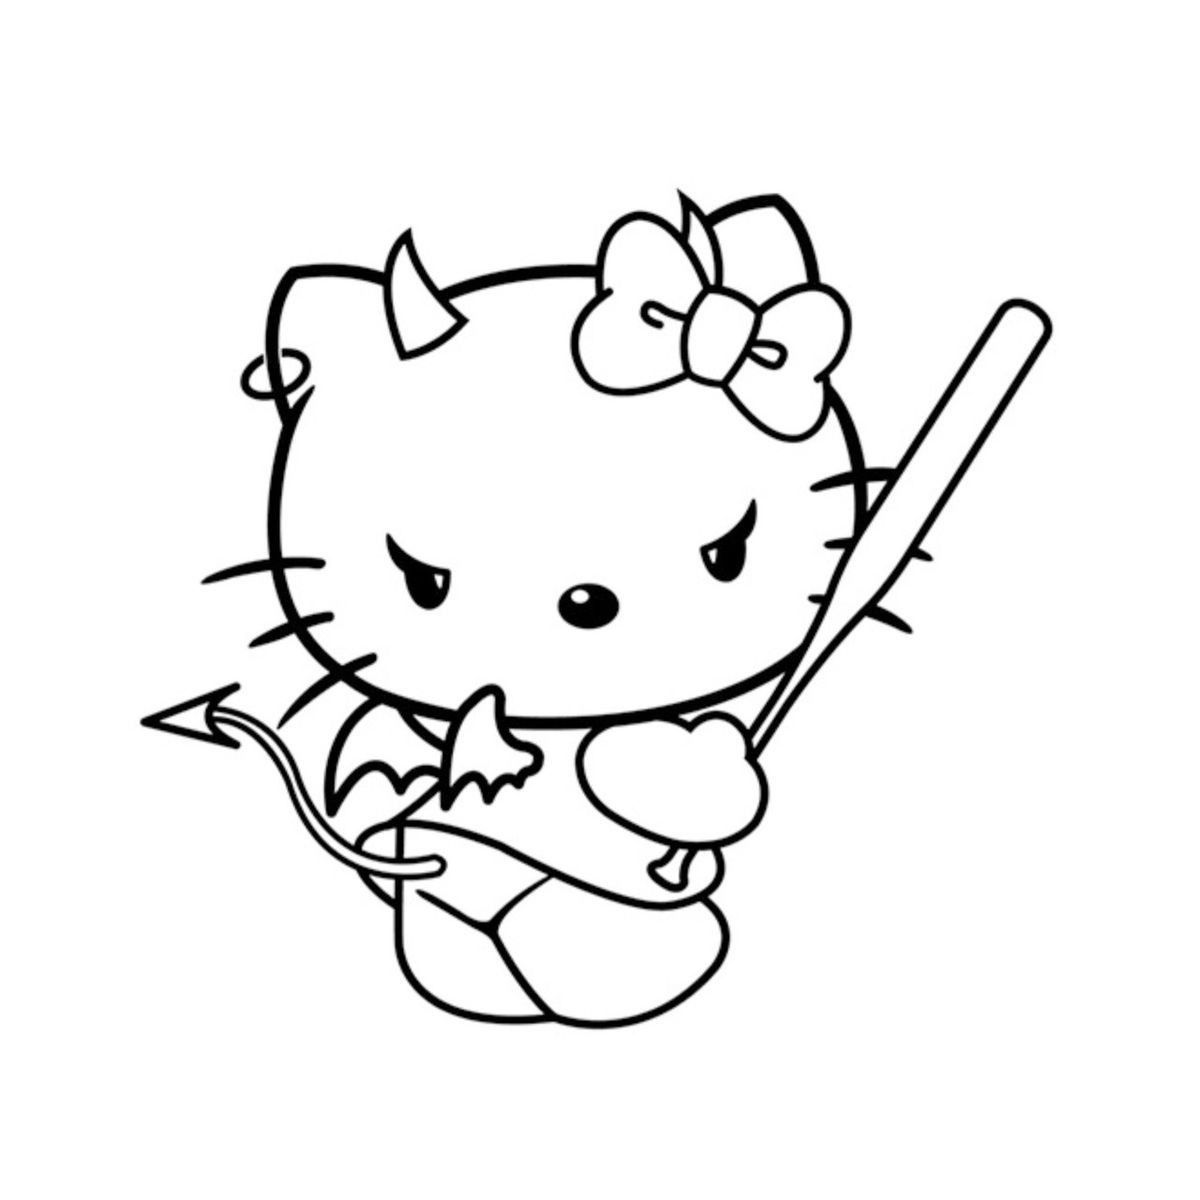 Pin By Shelby Ann On Desenhos In 2020 Hello Kitty Drawing Hello Kitty Coloring Hello Kitty Colouring Pages